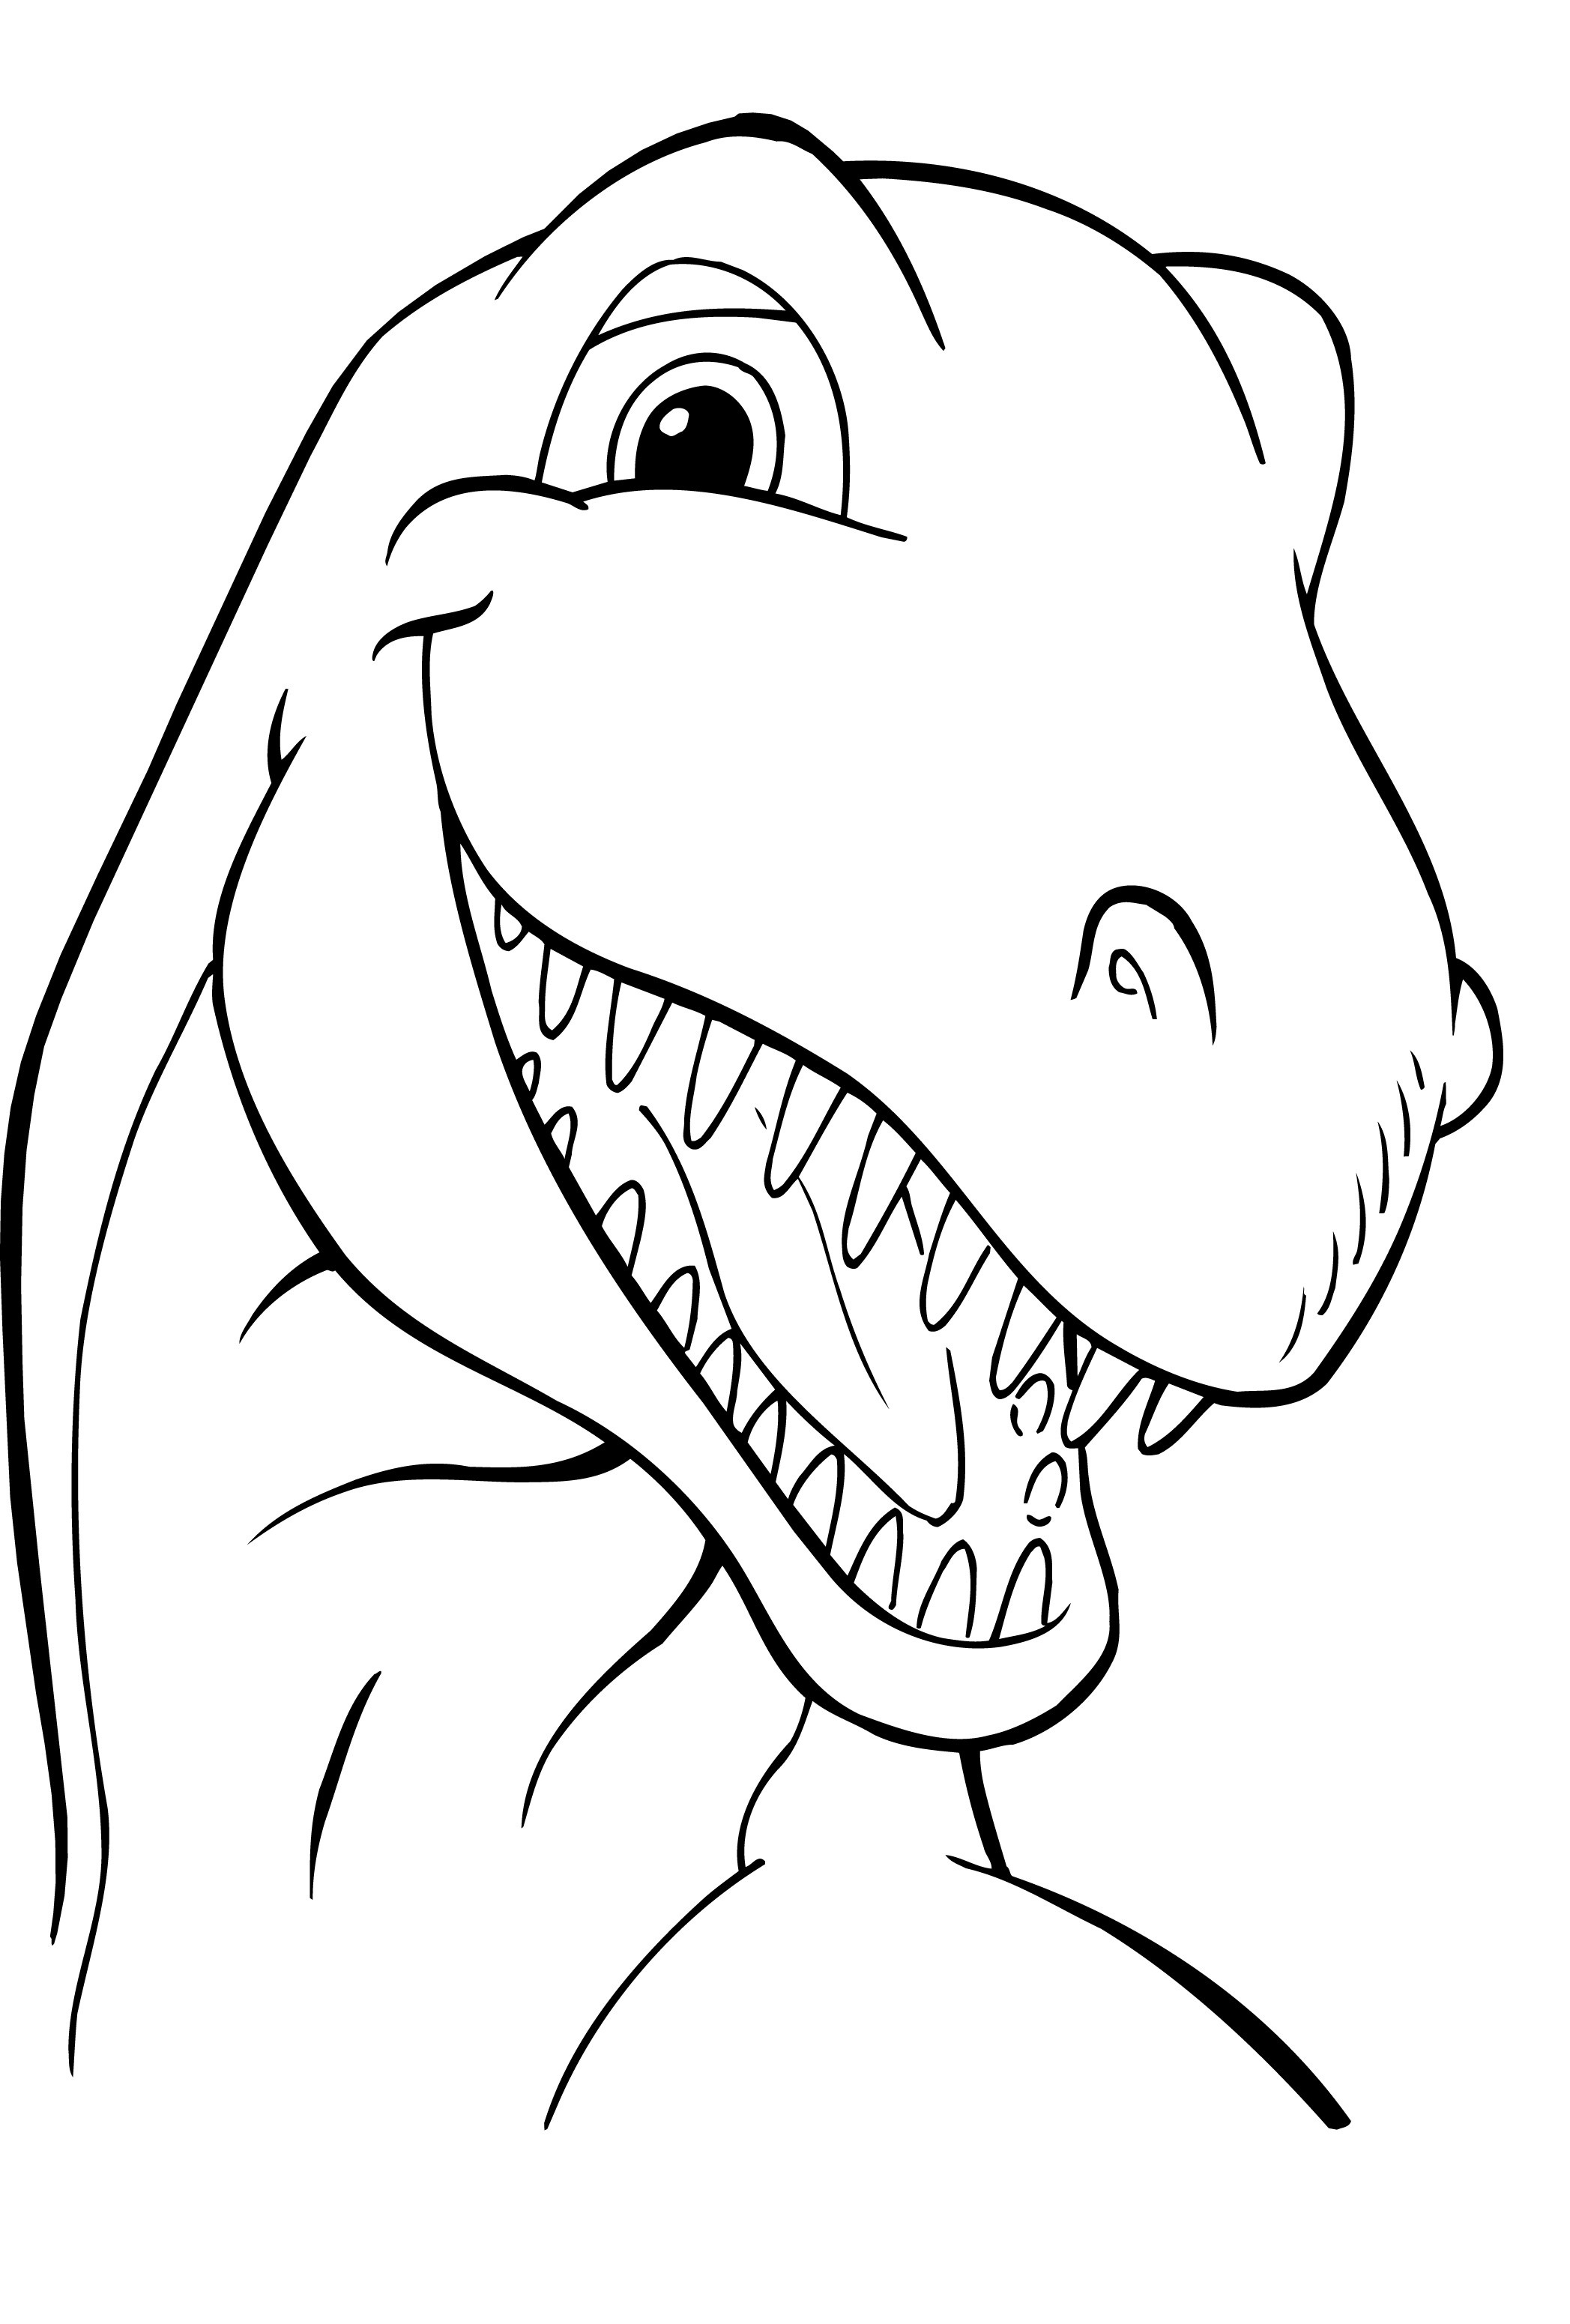 Free Printable Dinosaur Coloring Pages For Kids Free Coloring Pages For Printable